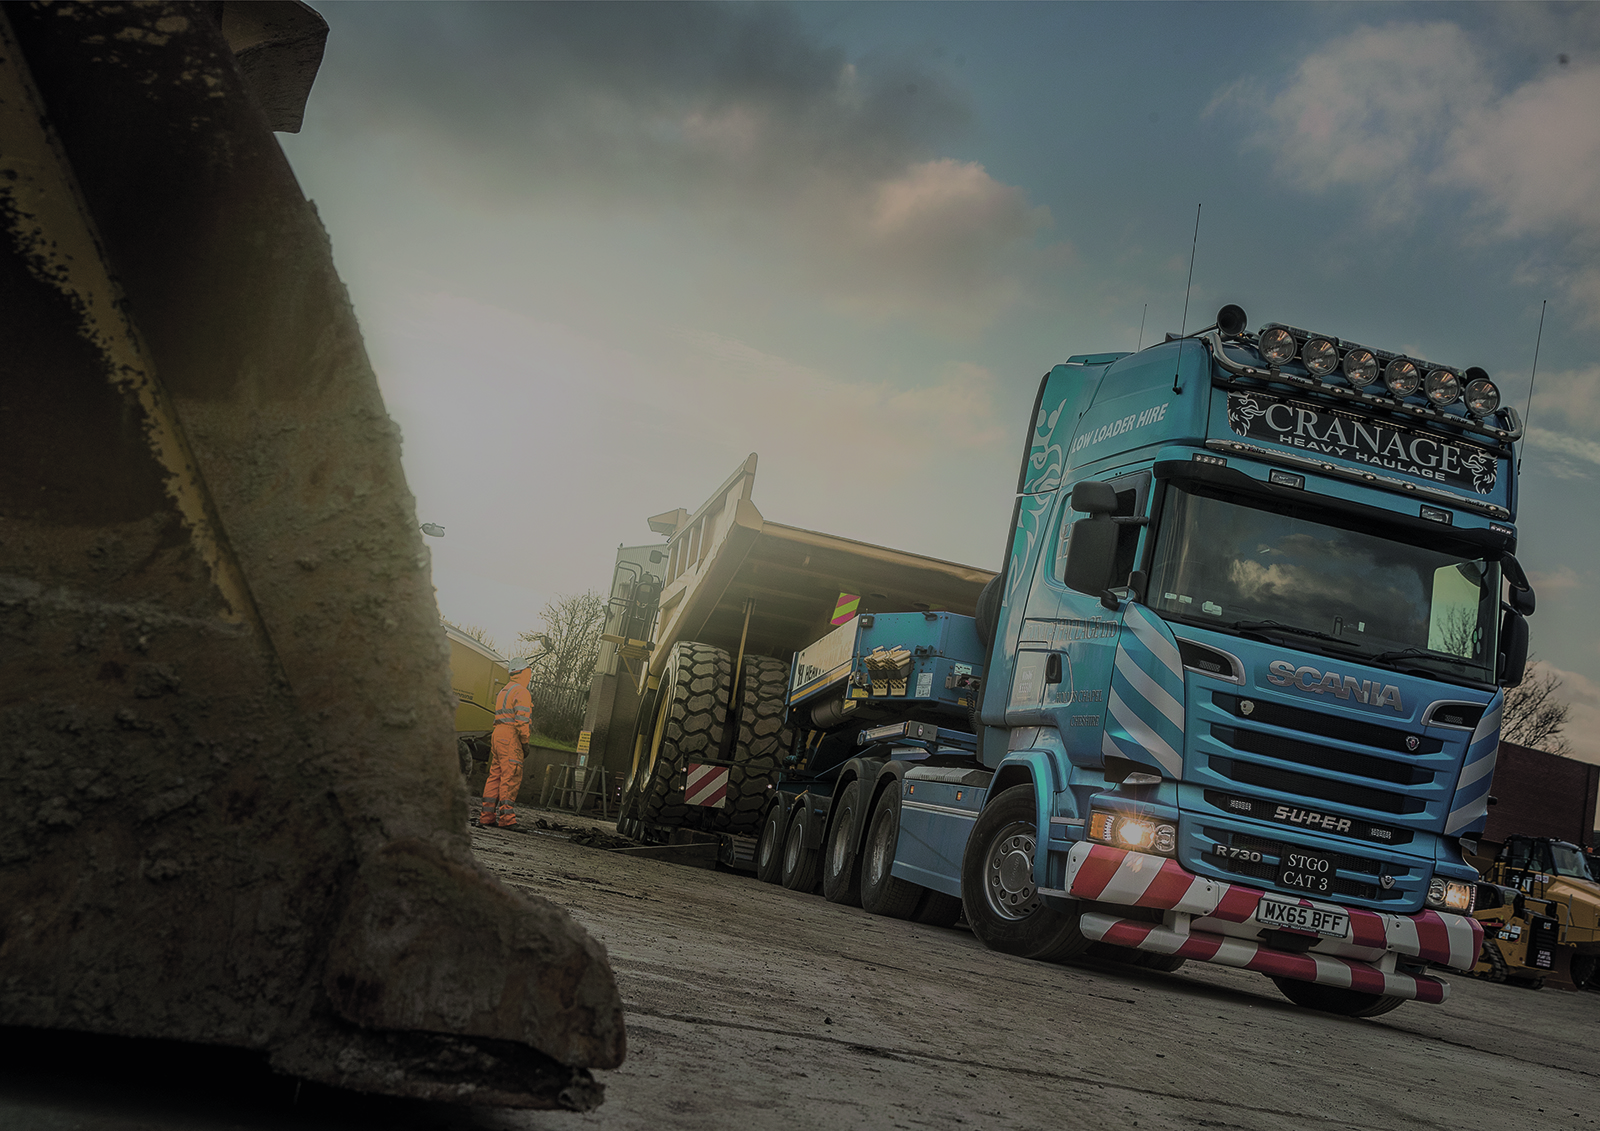 Cranage Heavy Haulage